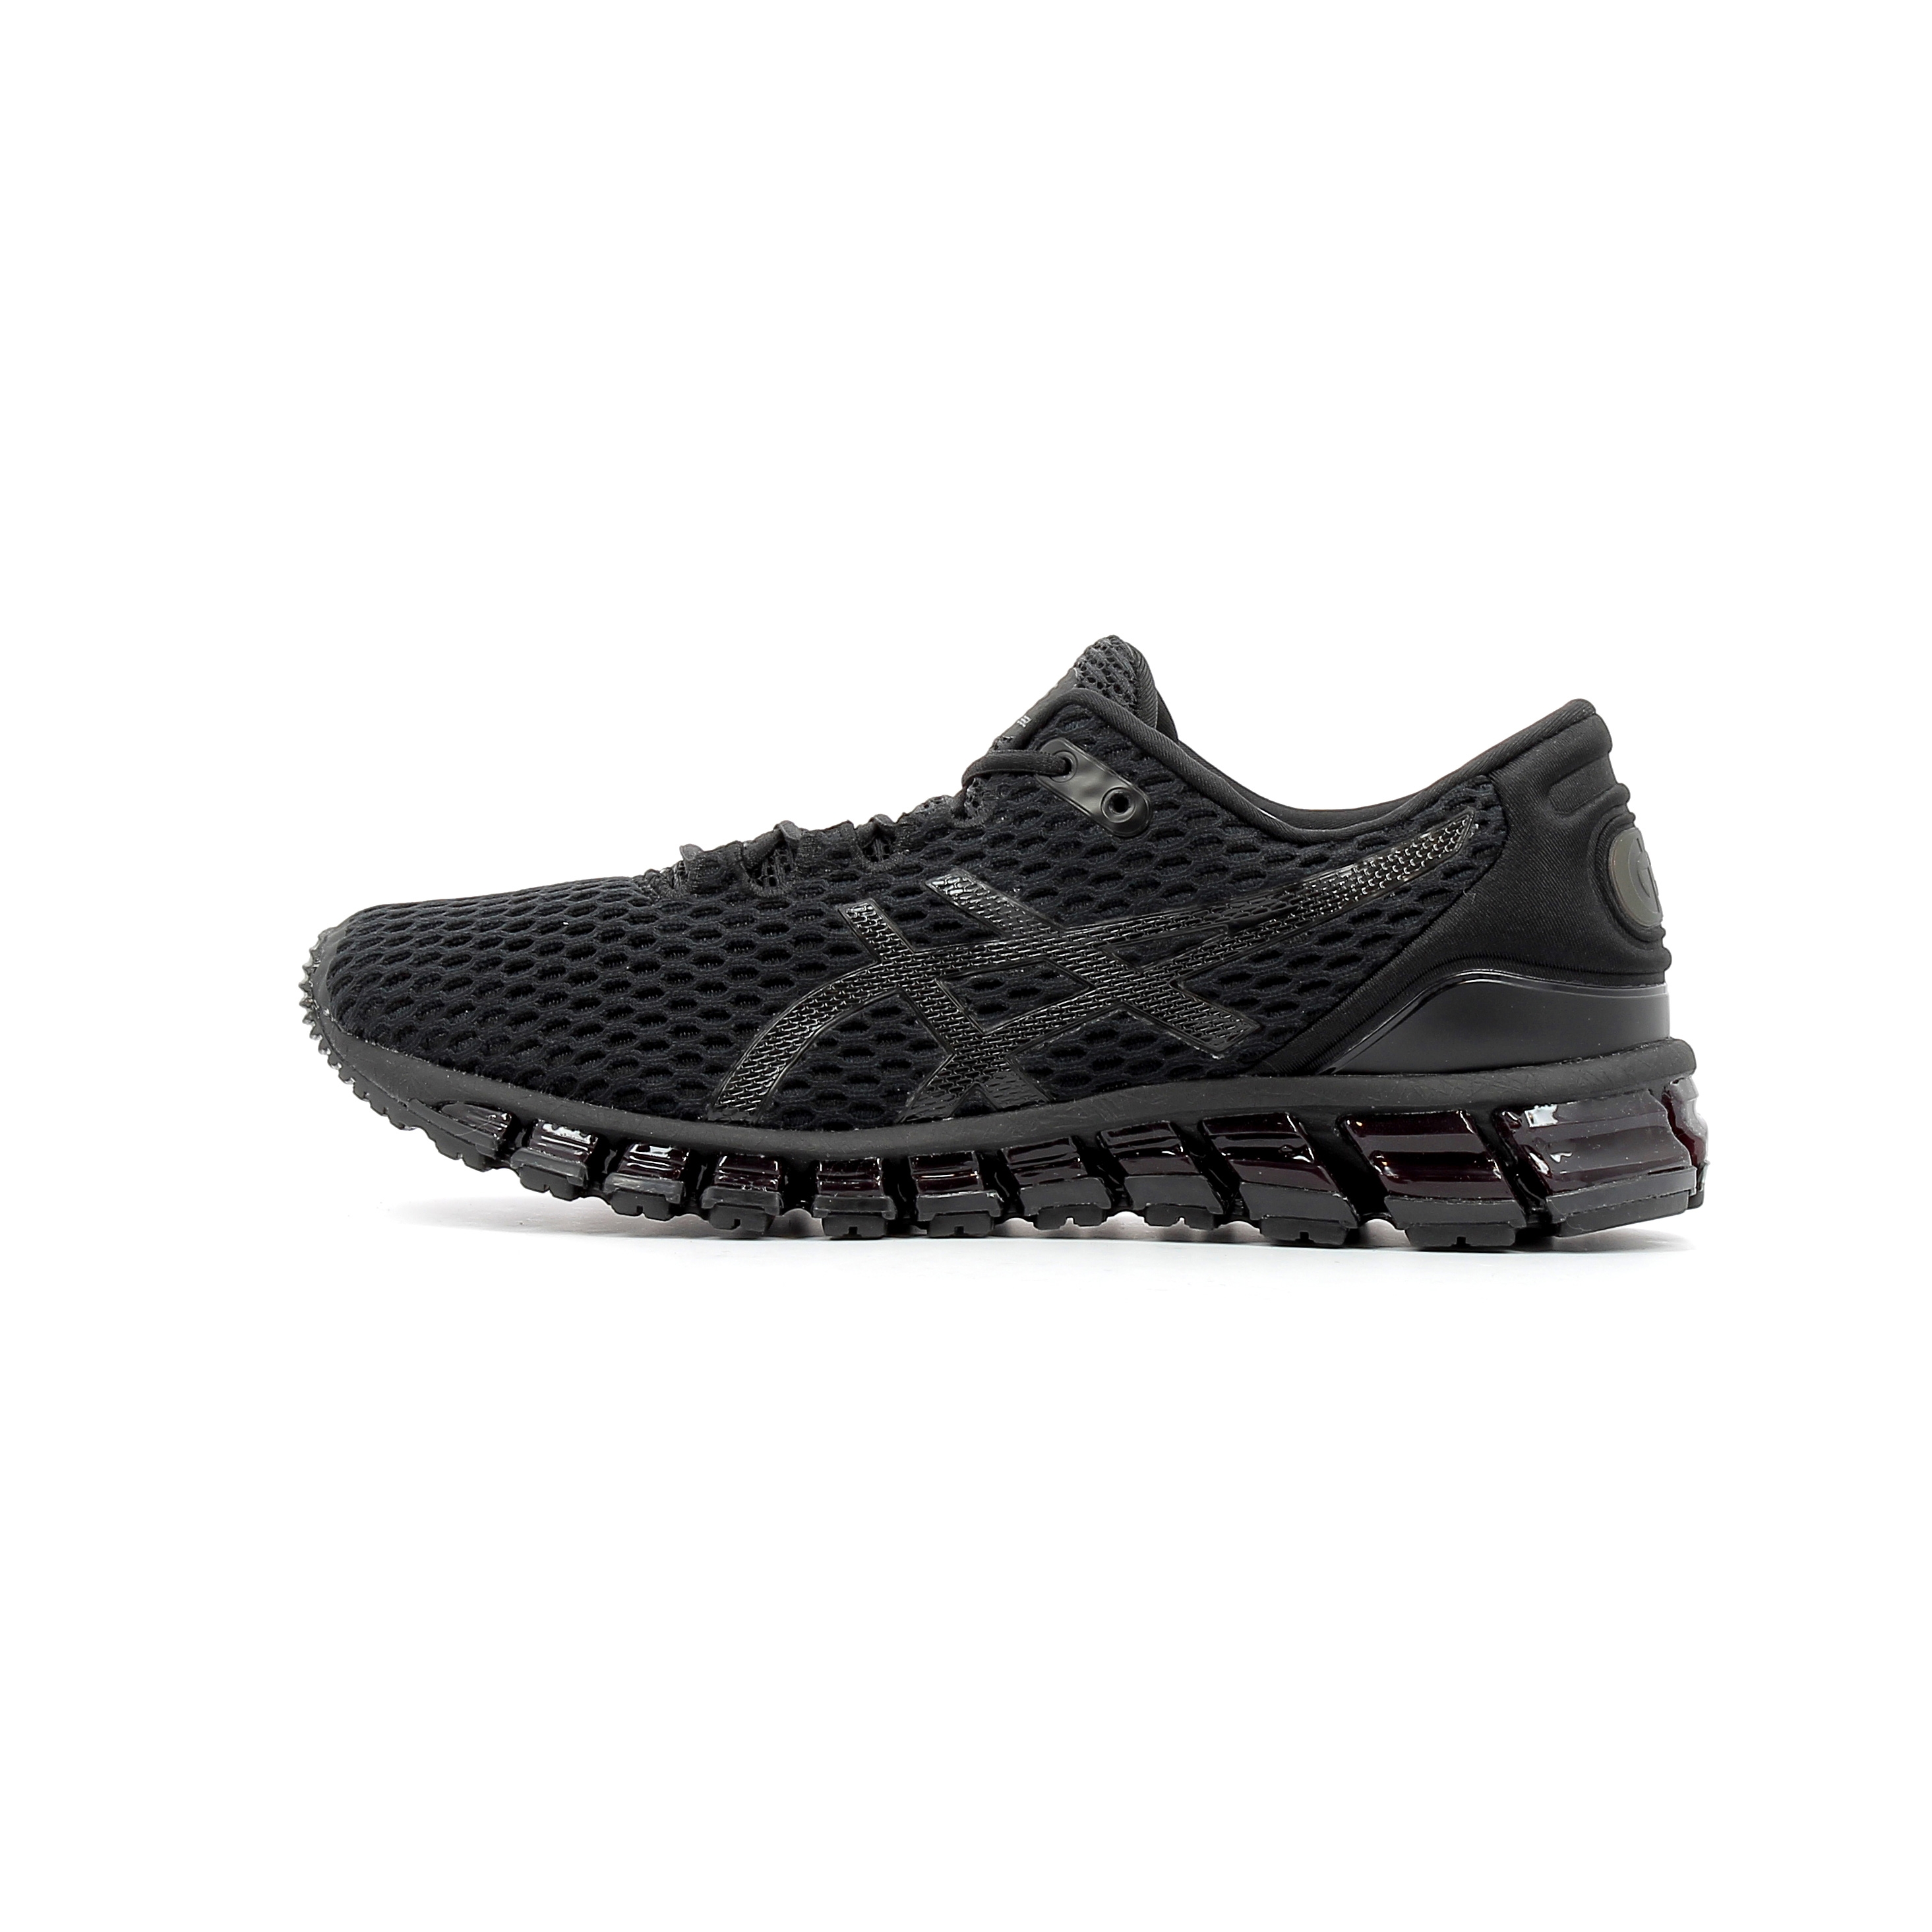 Gel Quantum Asics De 360 Chaussures Noir Running Mx Shift HYED2IW9